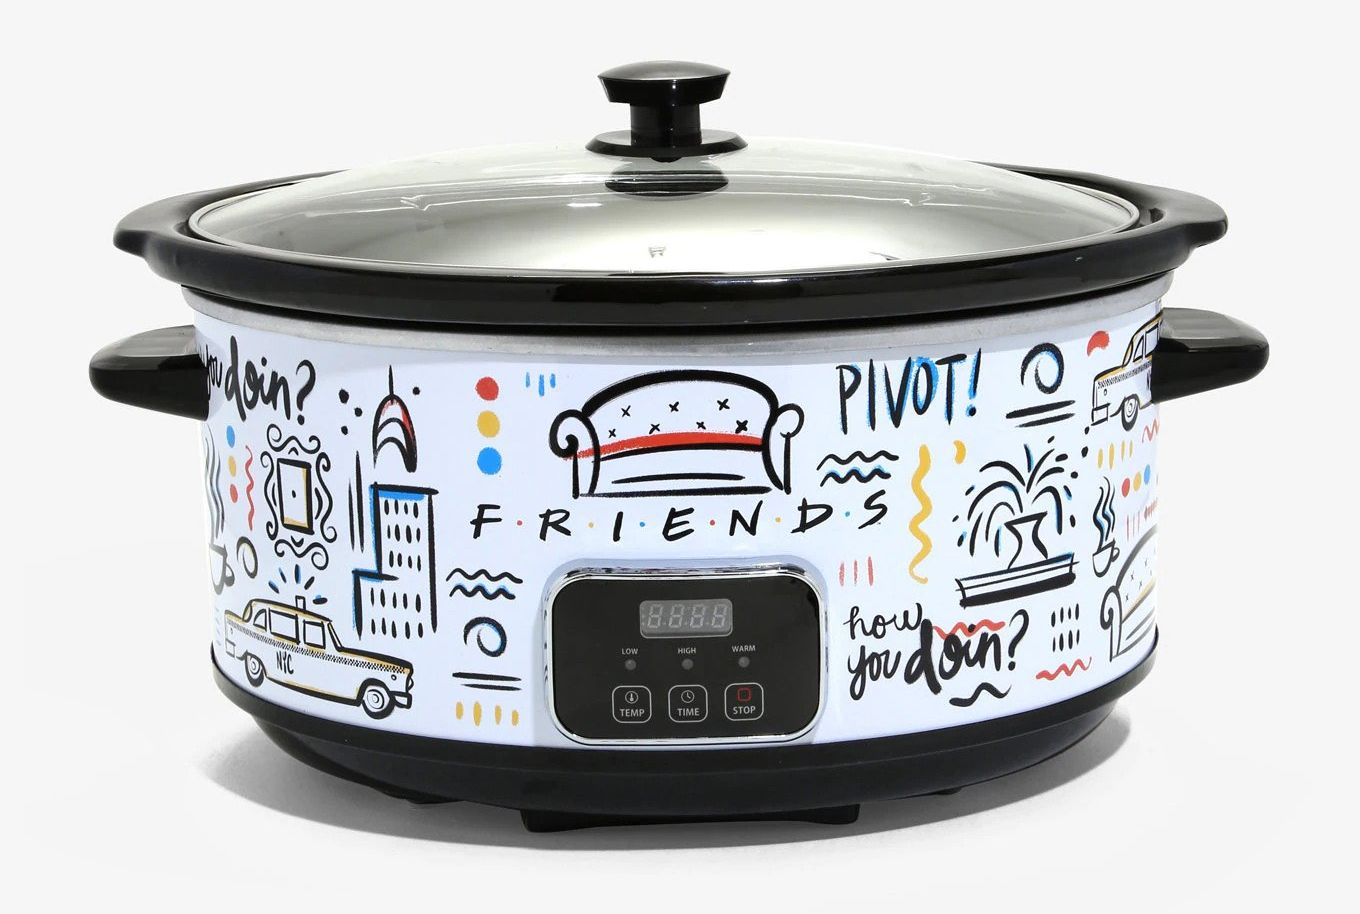 Channel Your Inner Chef Monica Geller With This <em>Friends</em>-Themed Slow Cooker